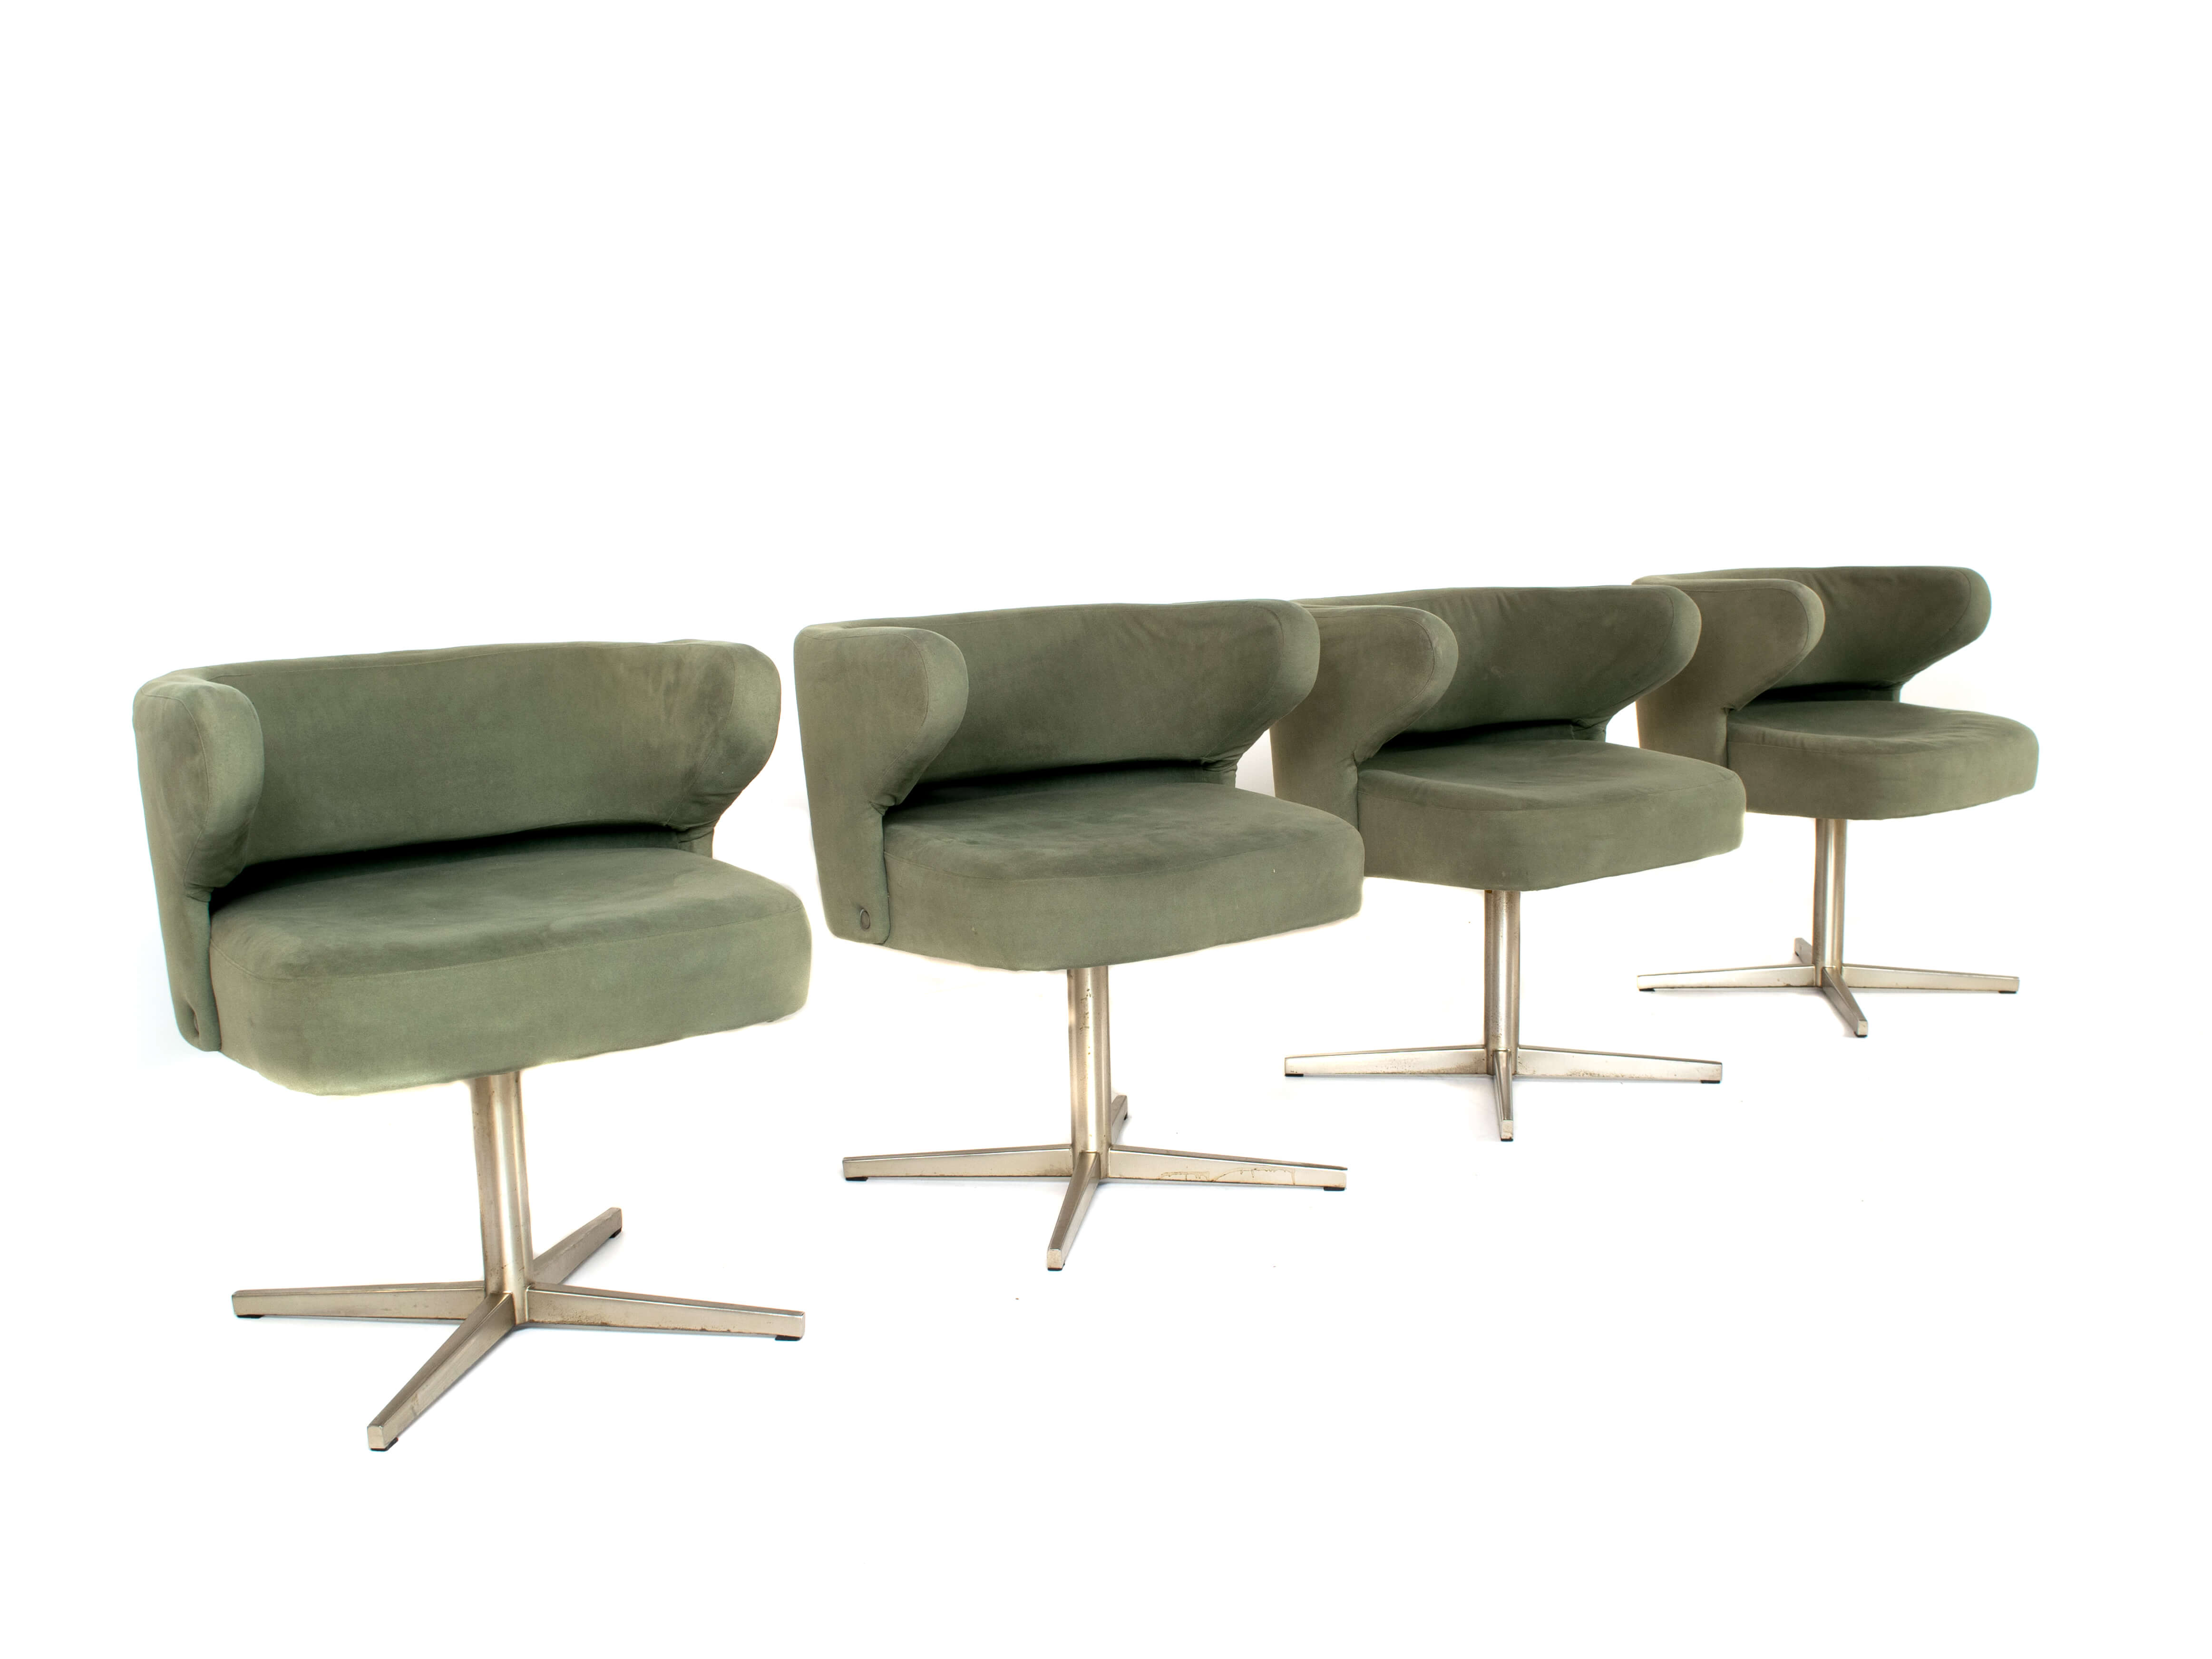 Set of Four Gianni Moscatelli Swivel 'Poney' Chairs for Formanova, Italy 1970's